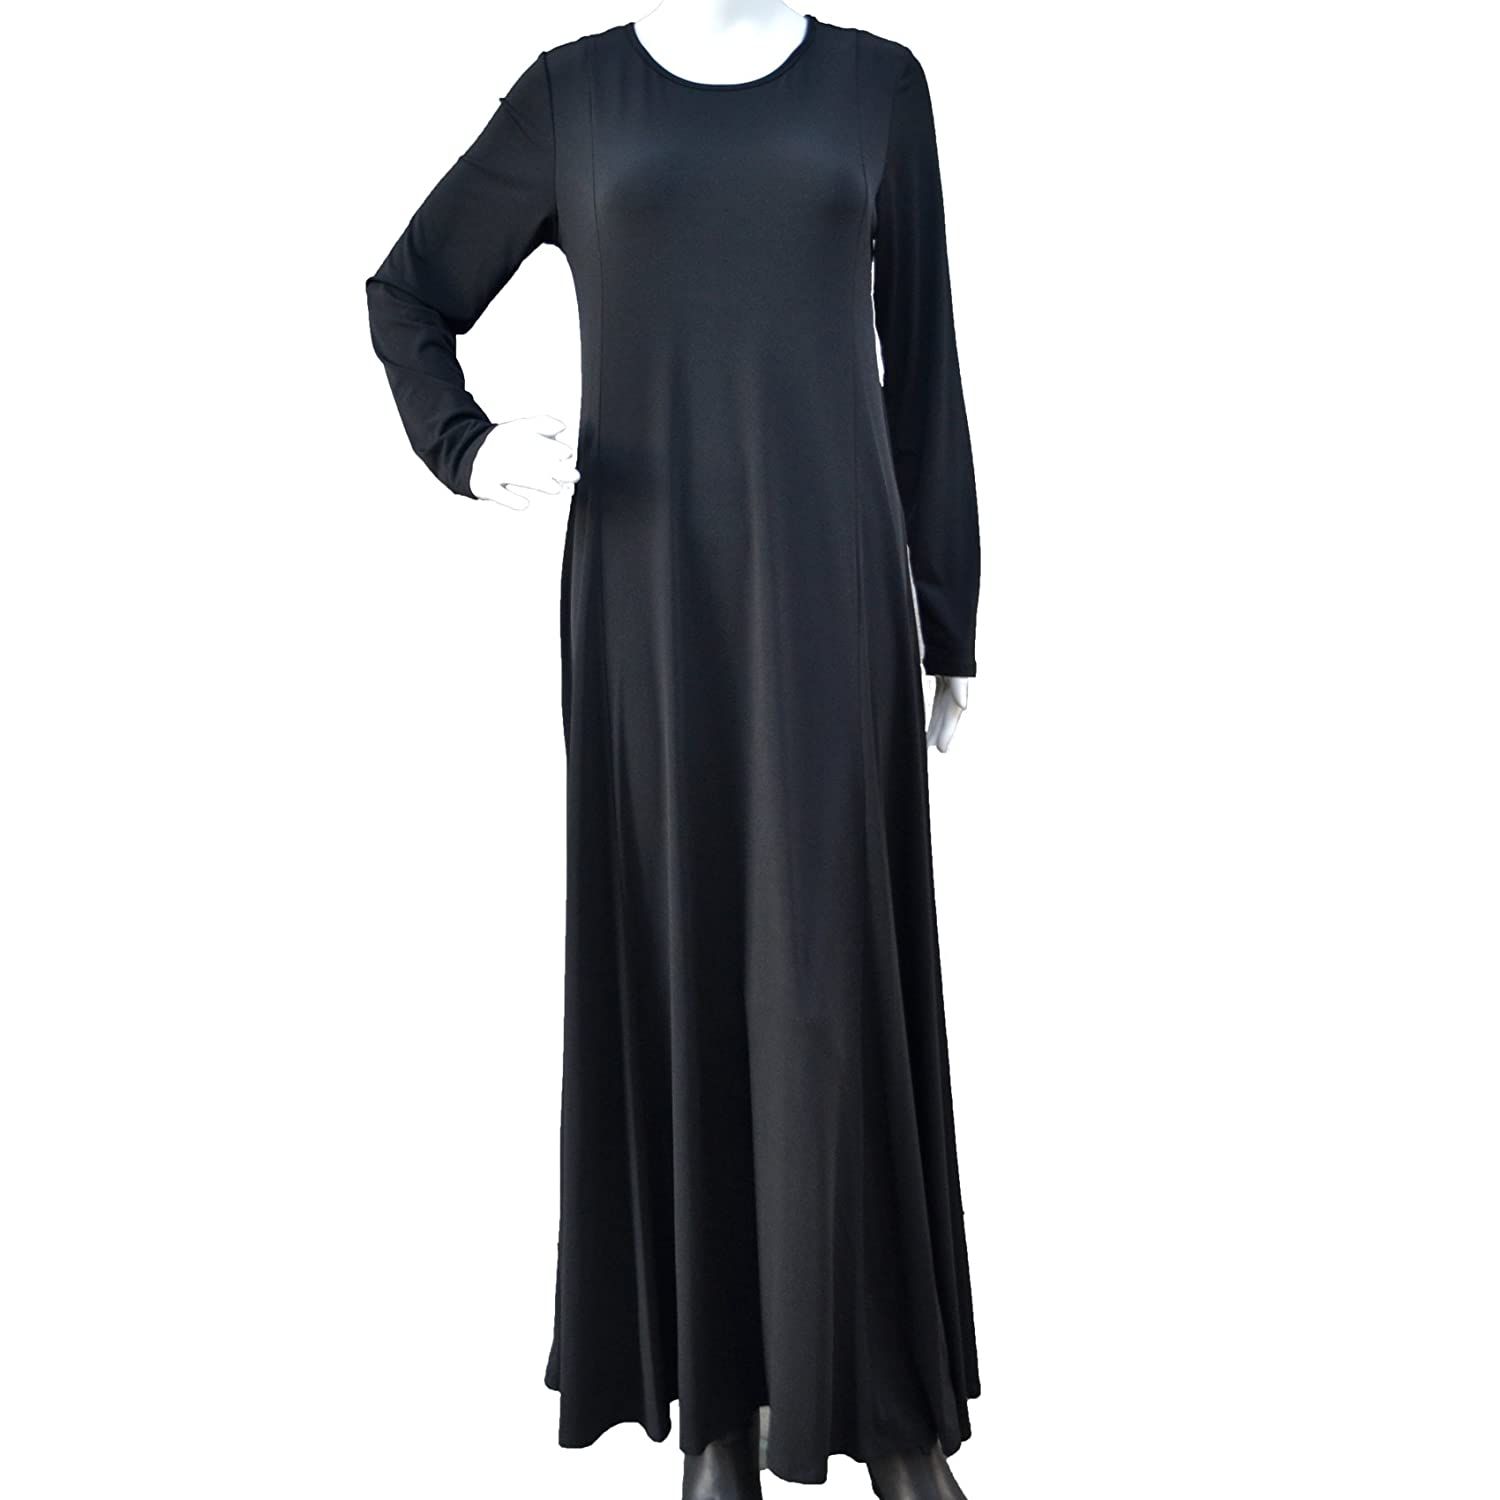 b970f160ef Very versatile, soft comfortable maxi dress that takes you from casual to  dressy by adding a few accessories. Accessories NOT Included.